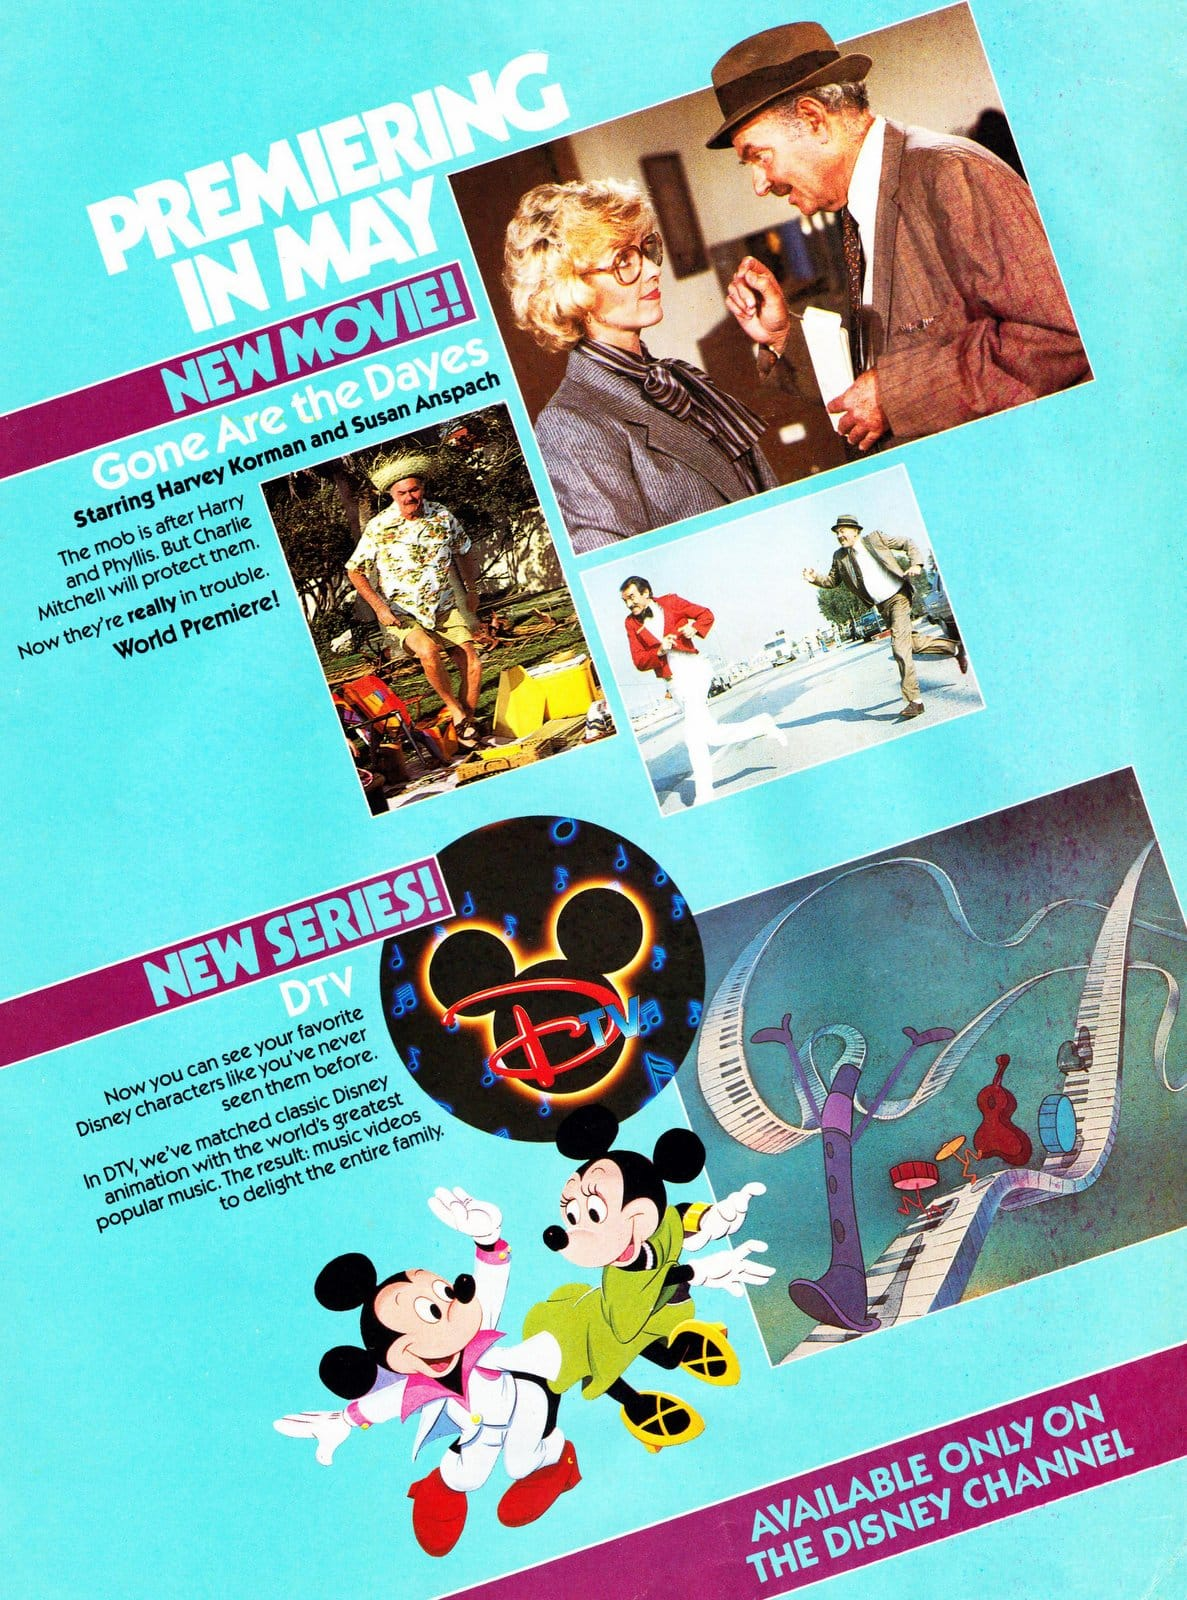 What was playing on the Disney Channel in April 1984